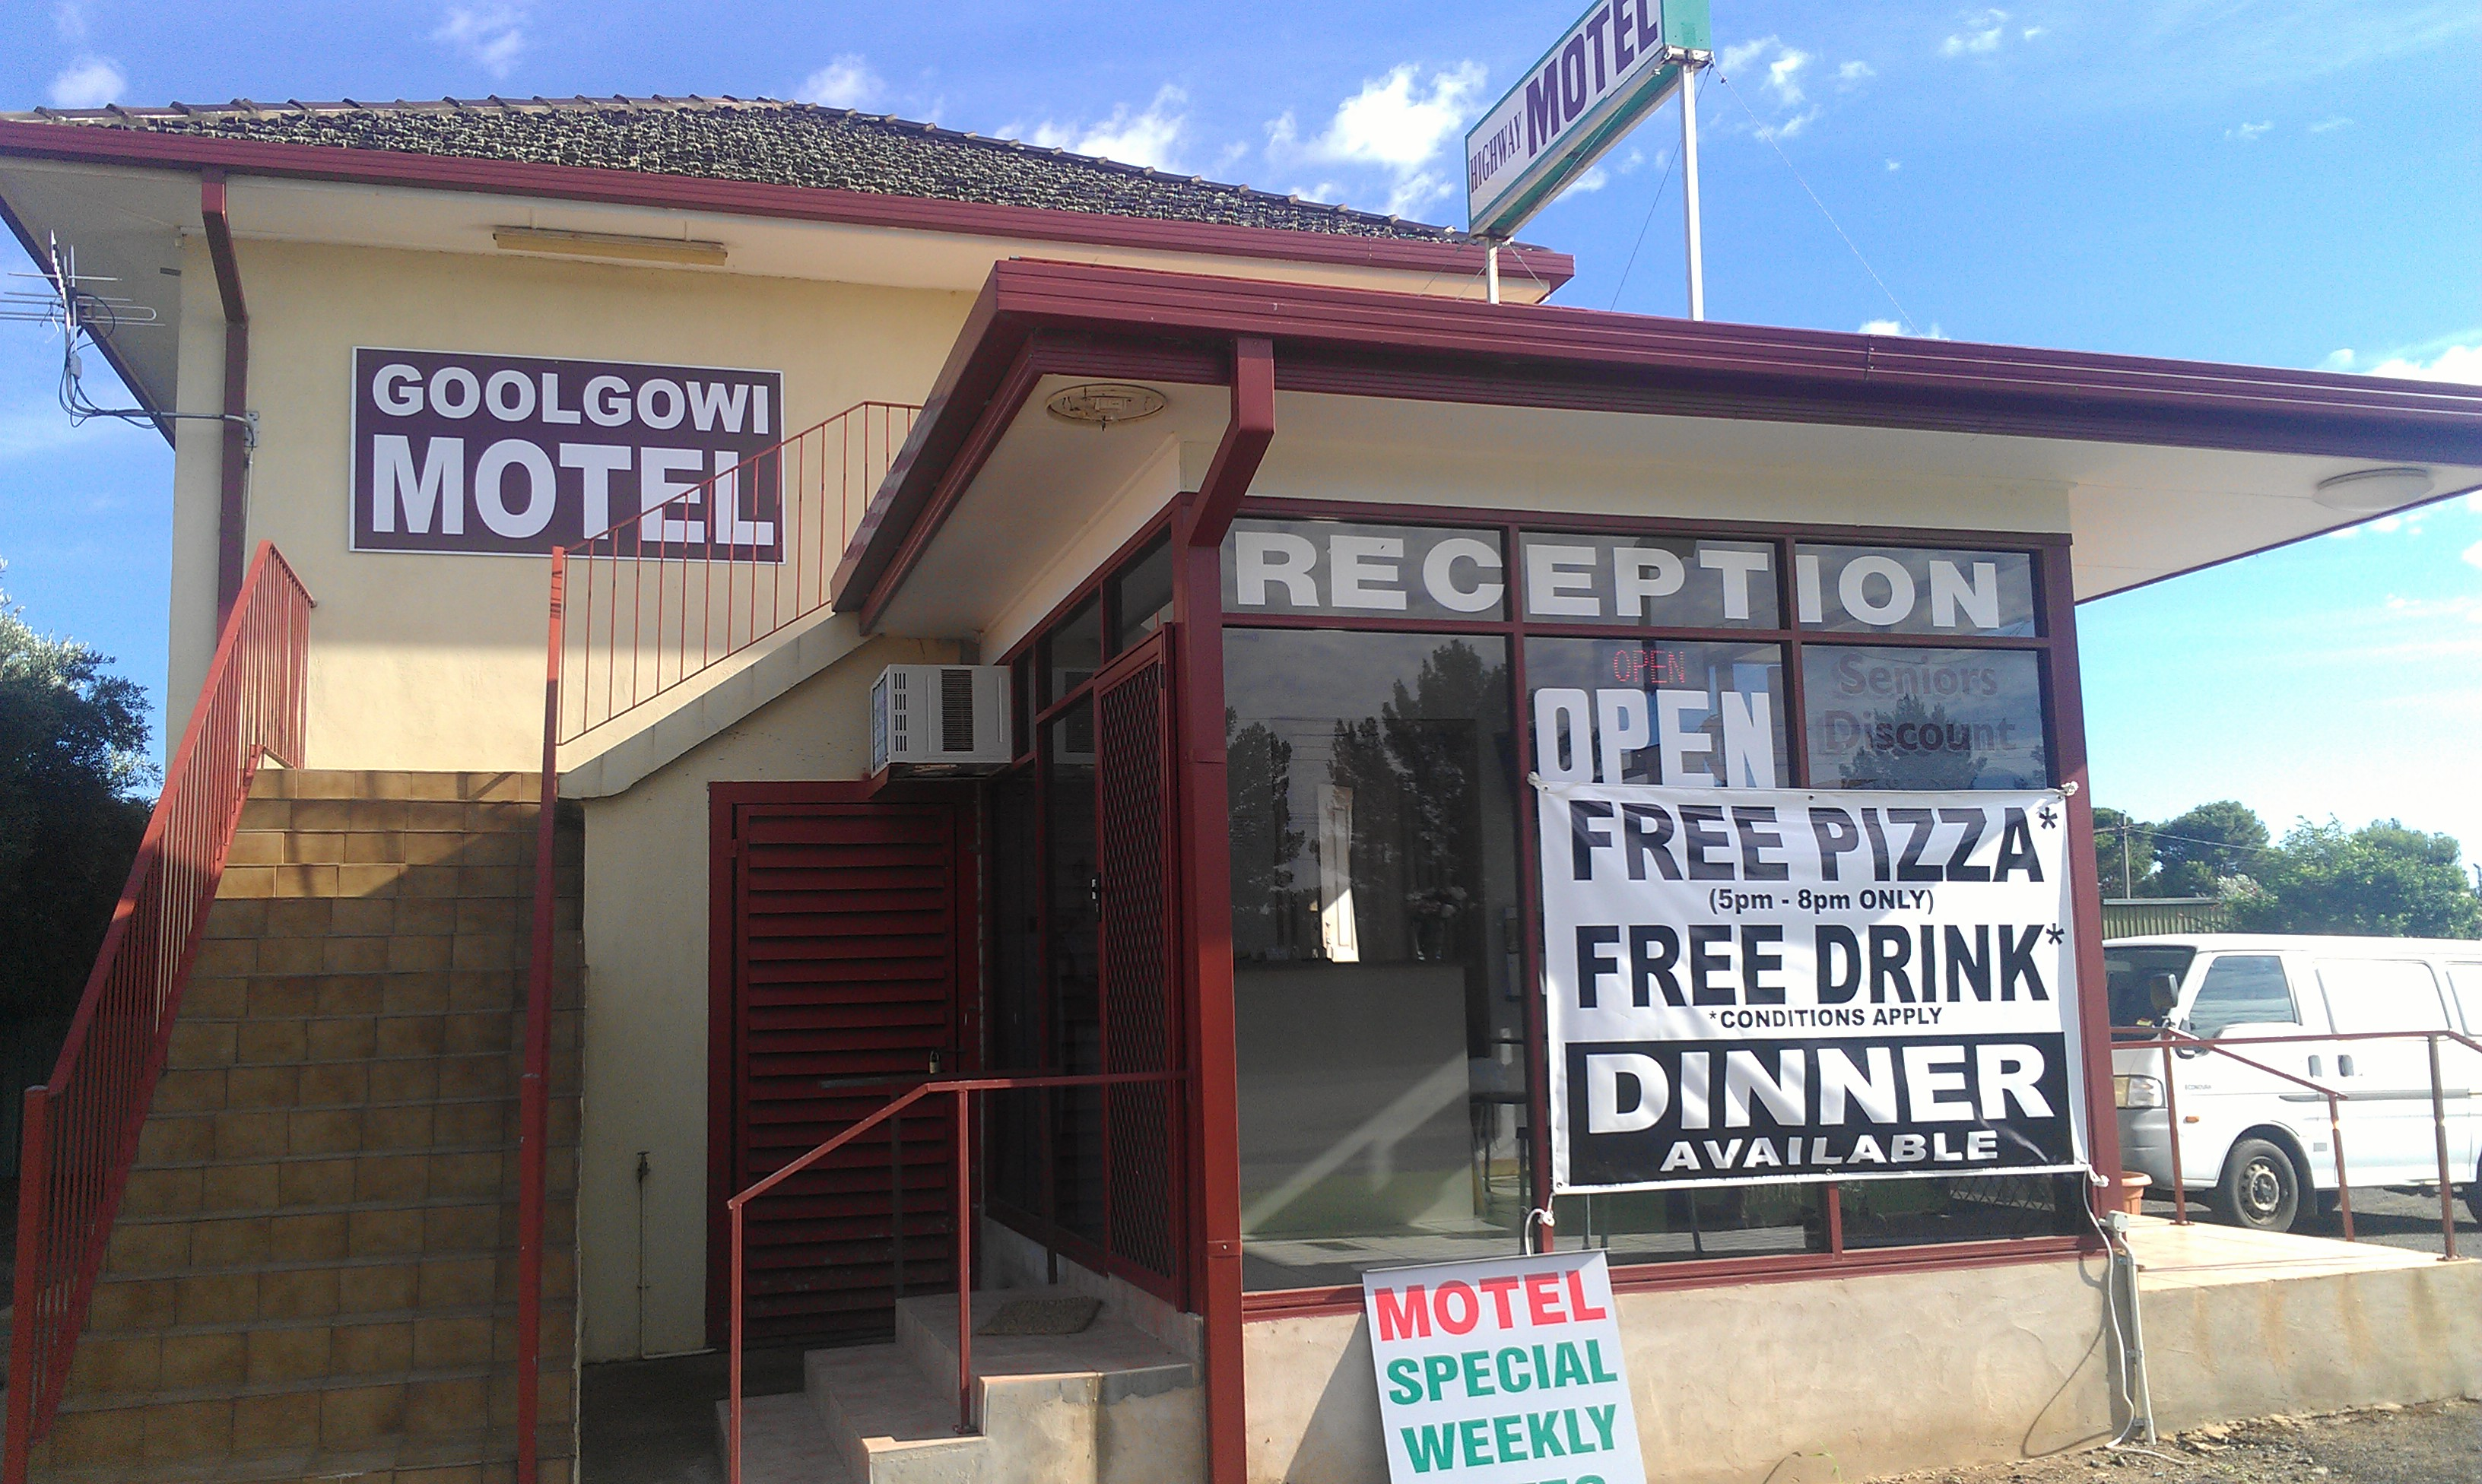 Royal Mail Hotel Goolgowi - Accommodation Ballina